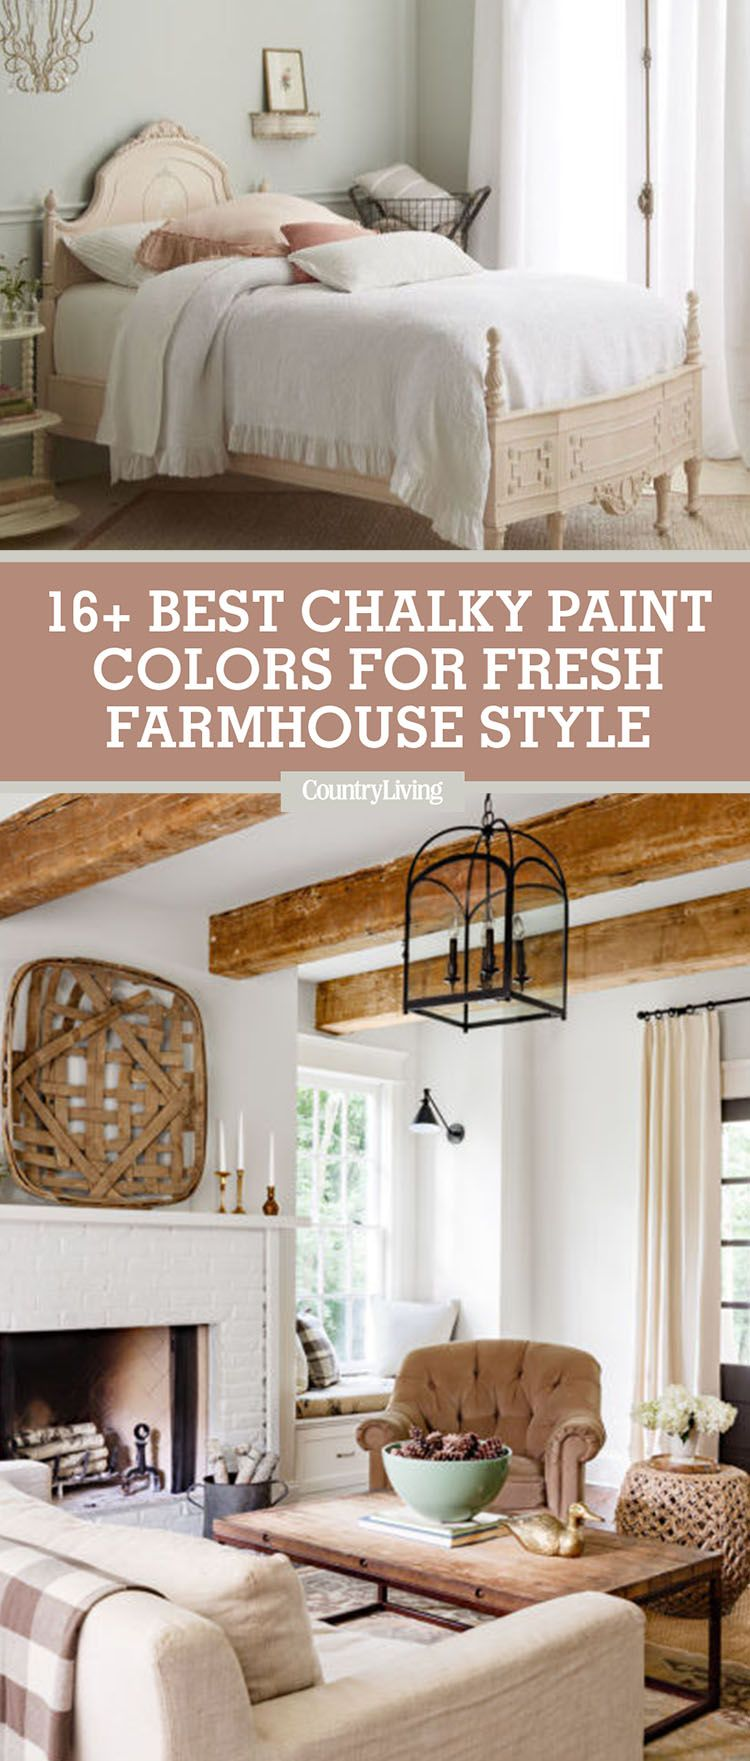 16 Best Chalk Paint Colors For Furniture   What Colors Does Chalk Paint  Come In?